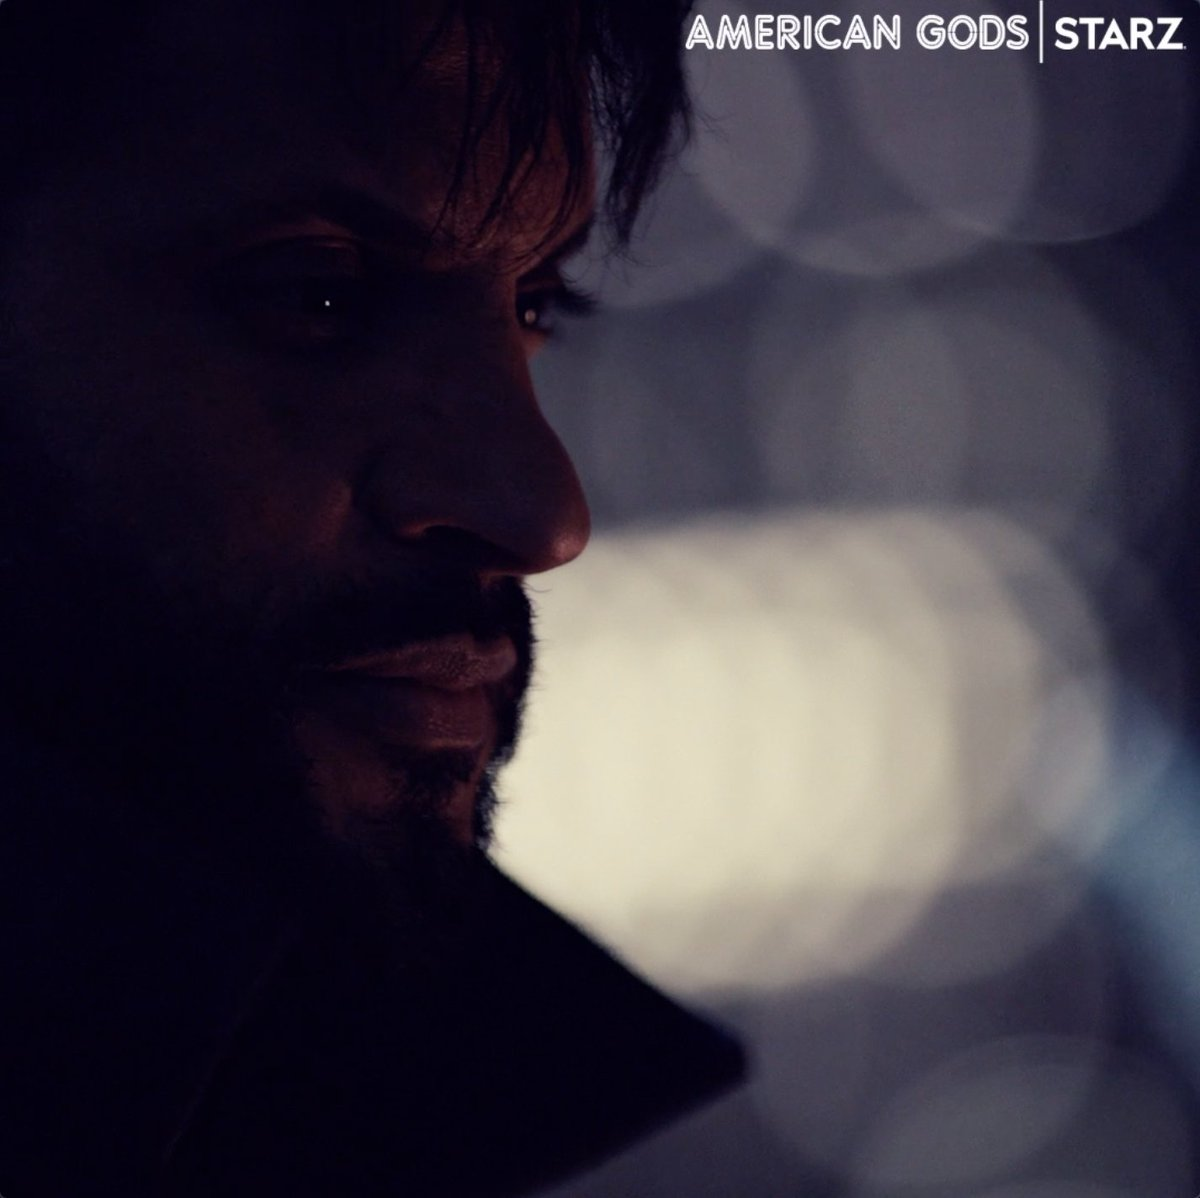 Replying to @americangodsus: How does one go about choosing their destiny? Asking for a friend. 🤔 #AmericanGods